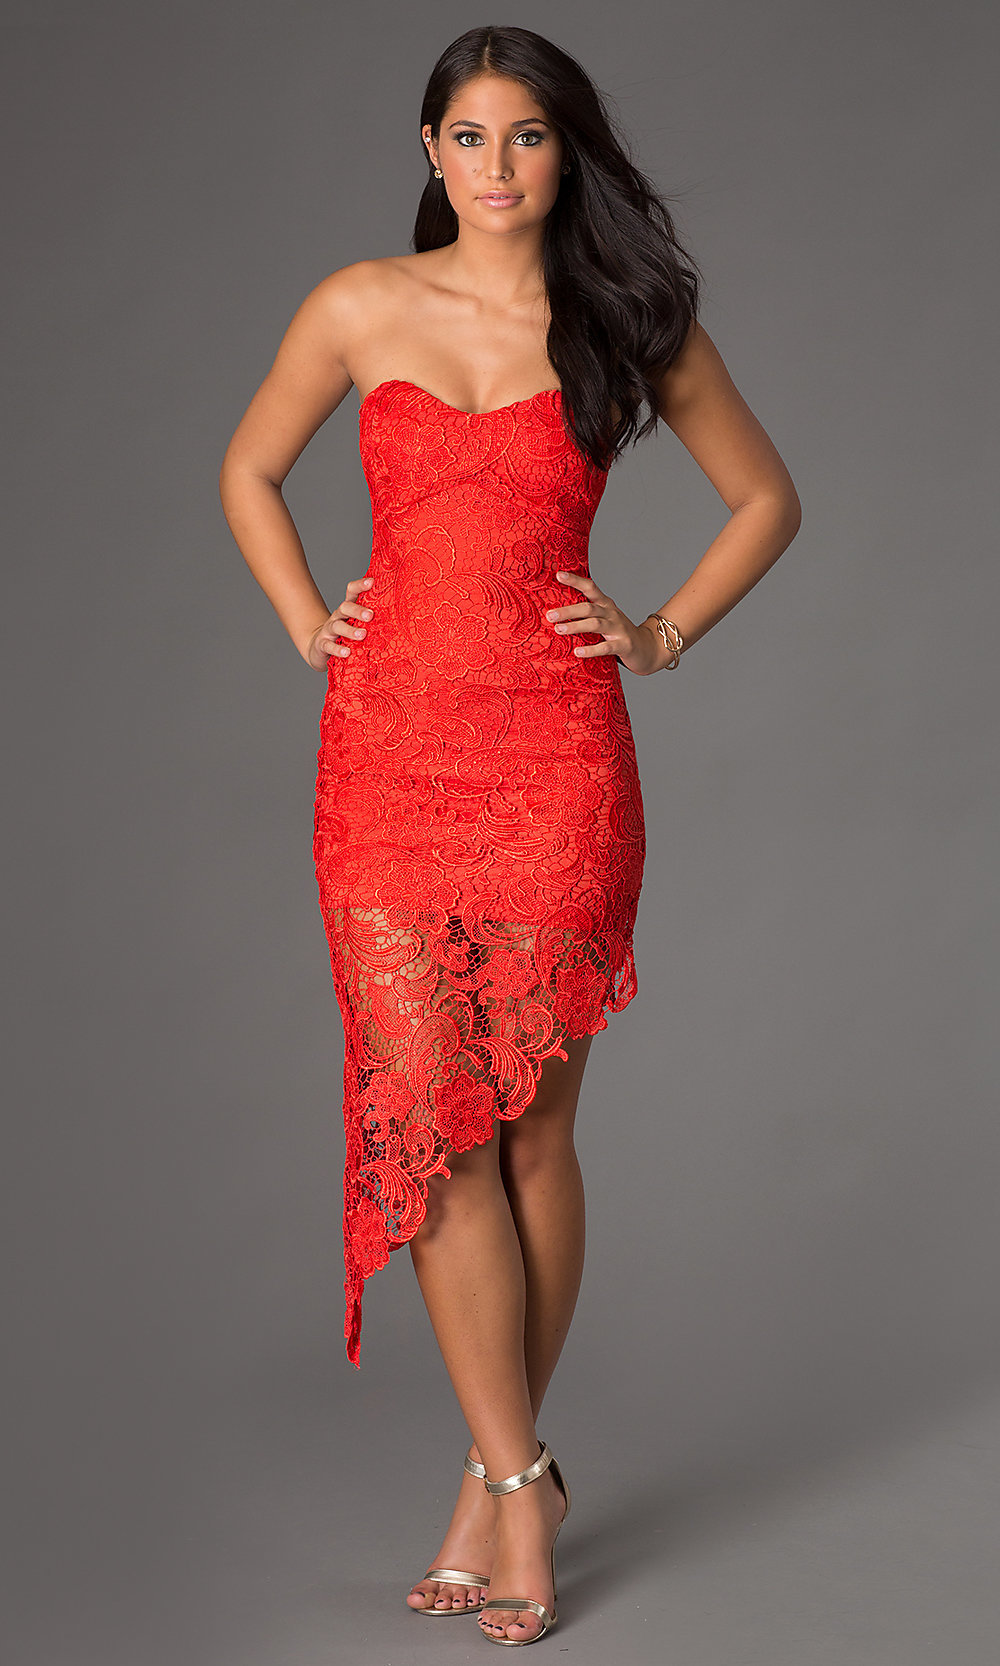 Short Strapless Lace Dress Short Lace Cocktail Dress- PromGirl